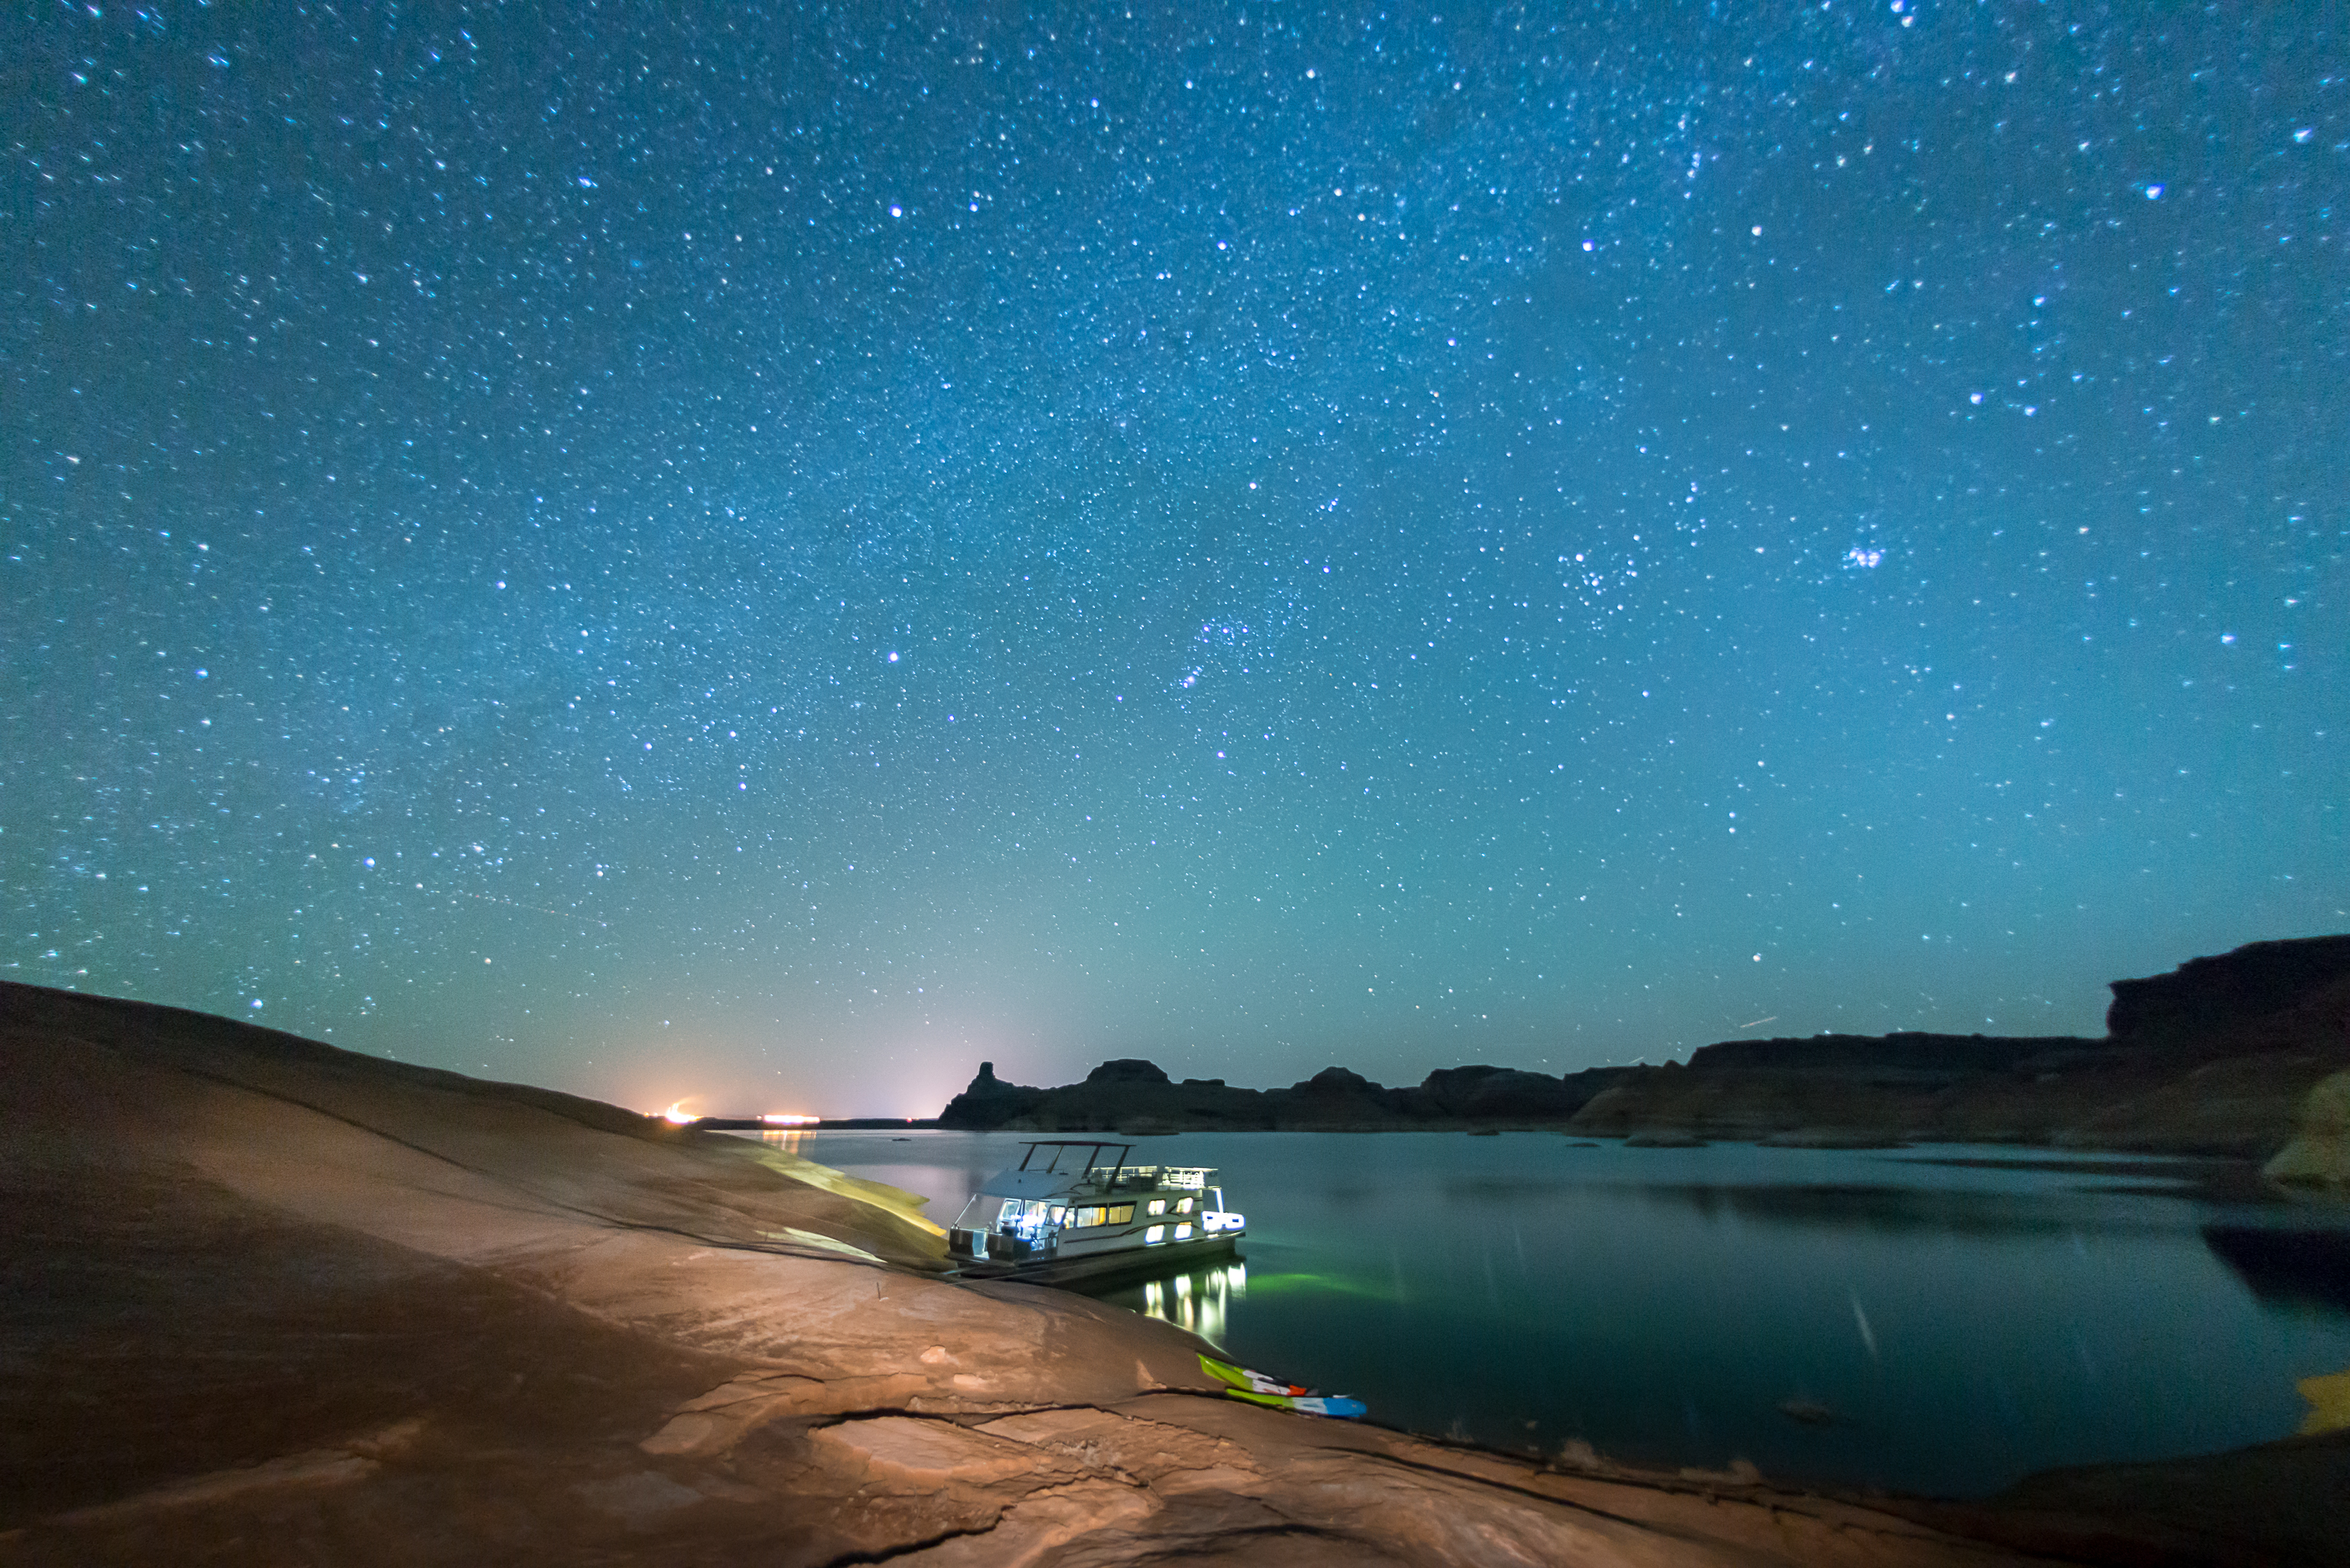 Houseboating Under the Stars